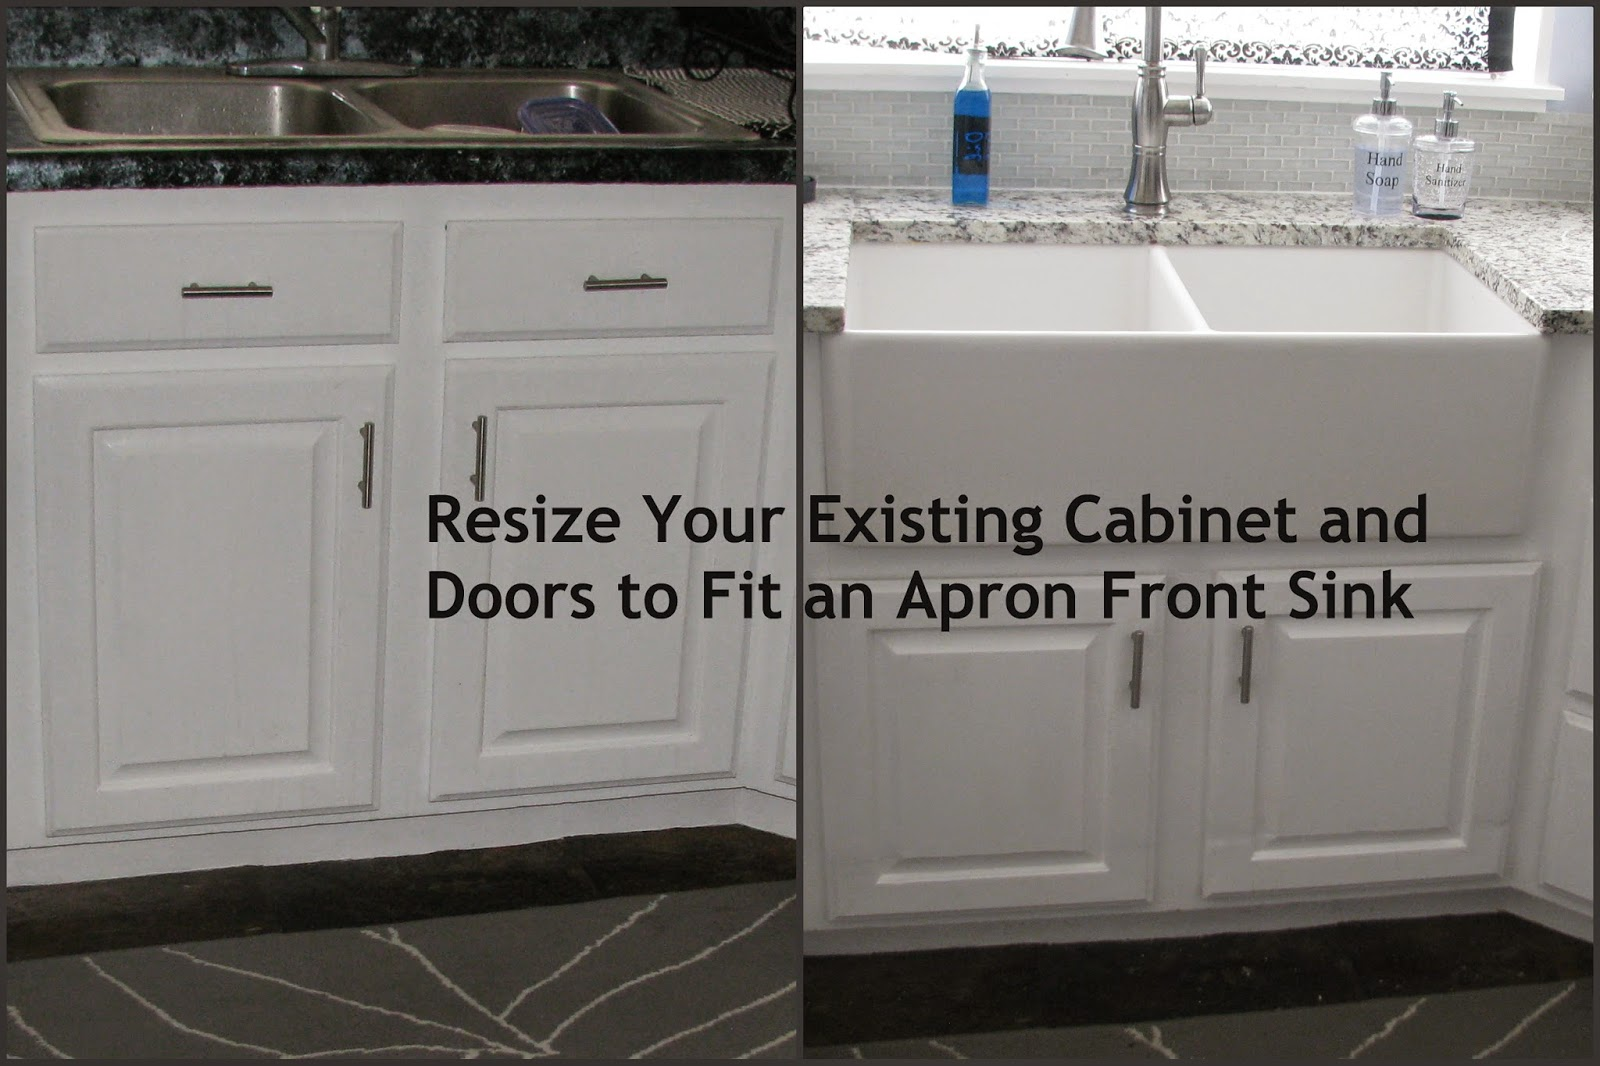 My So Called Diy Blog Resize Your Existing Cabinet And Doors To Fit. A  Front Sink Installed New Stainless Steel ...